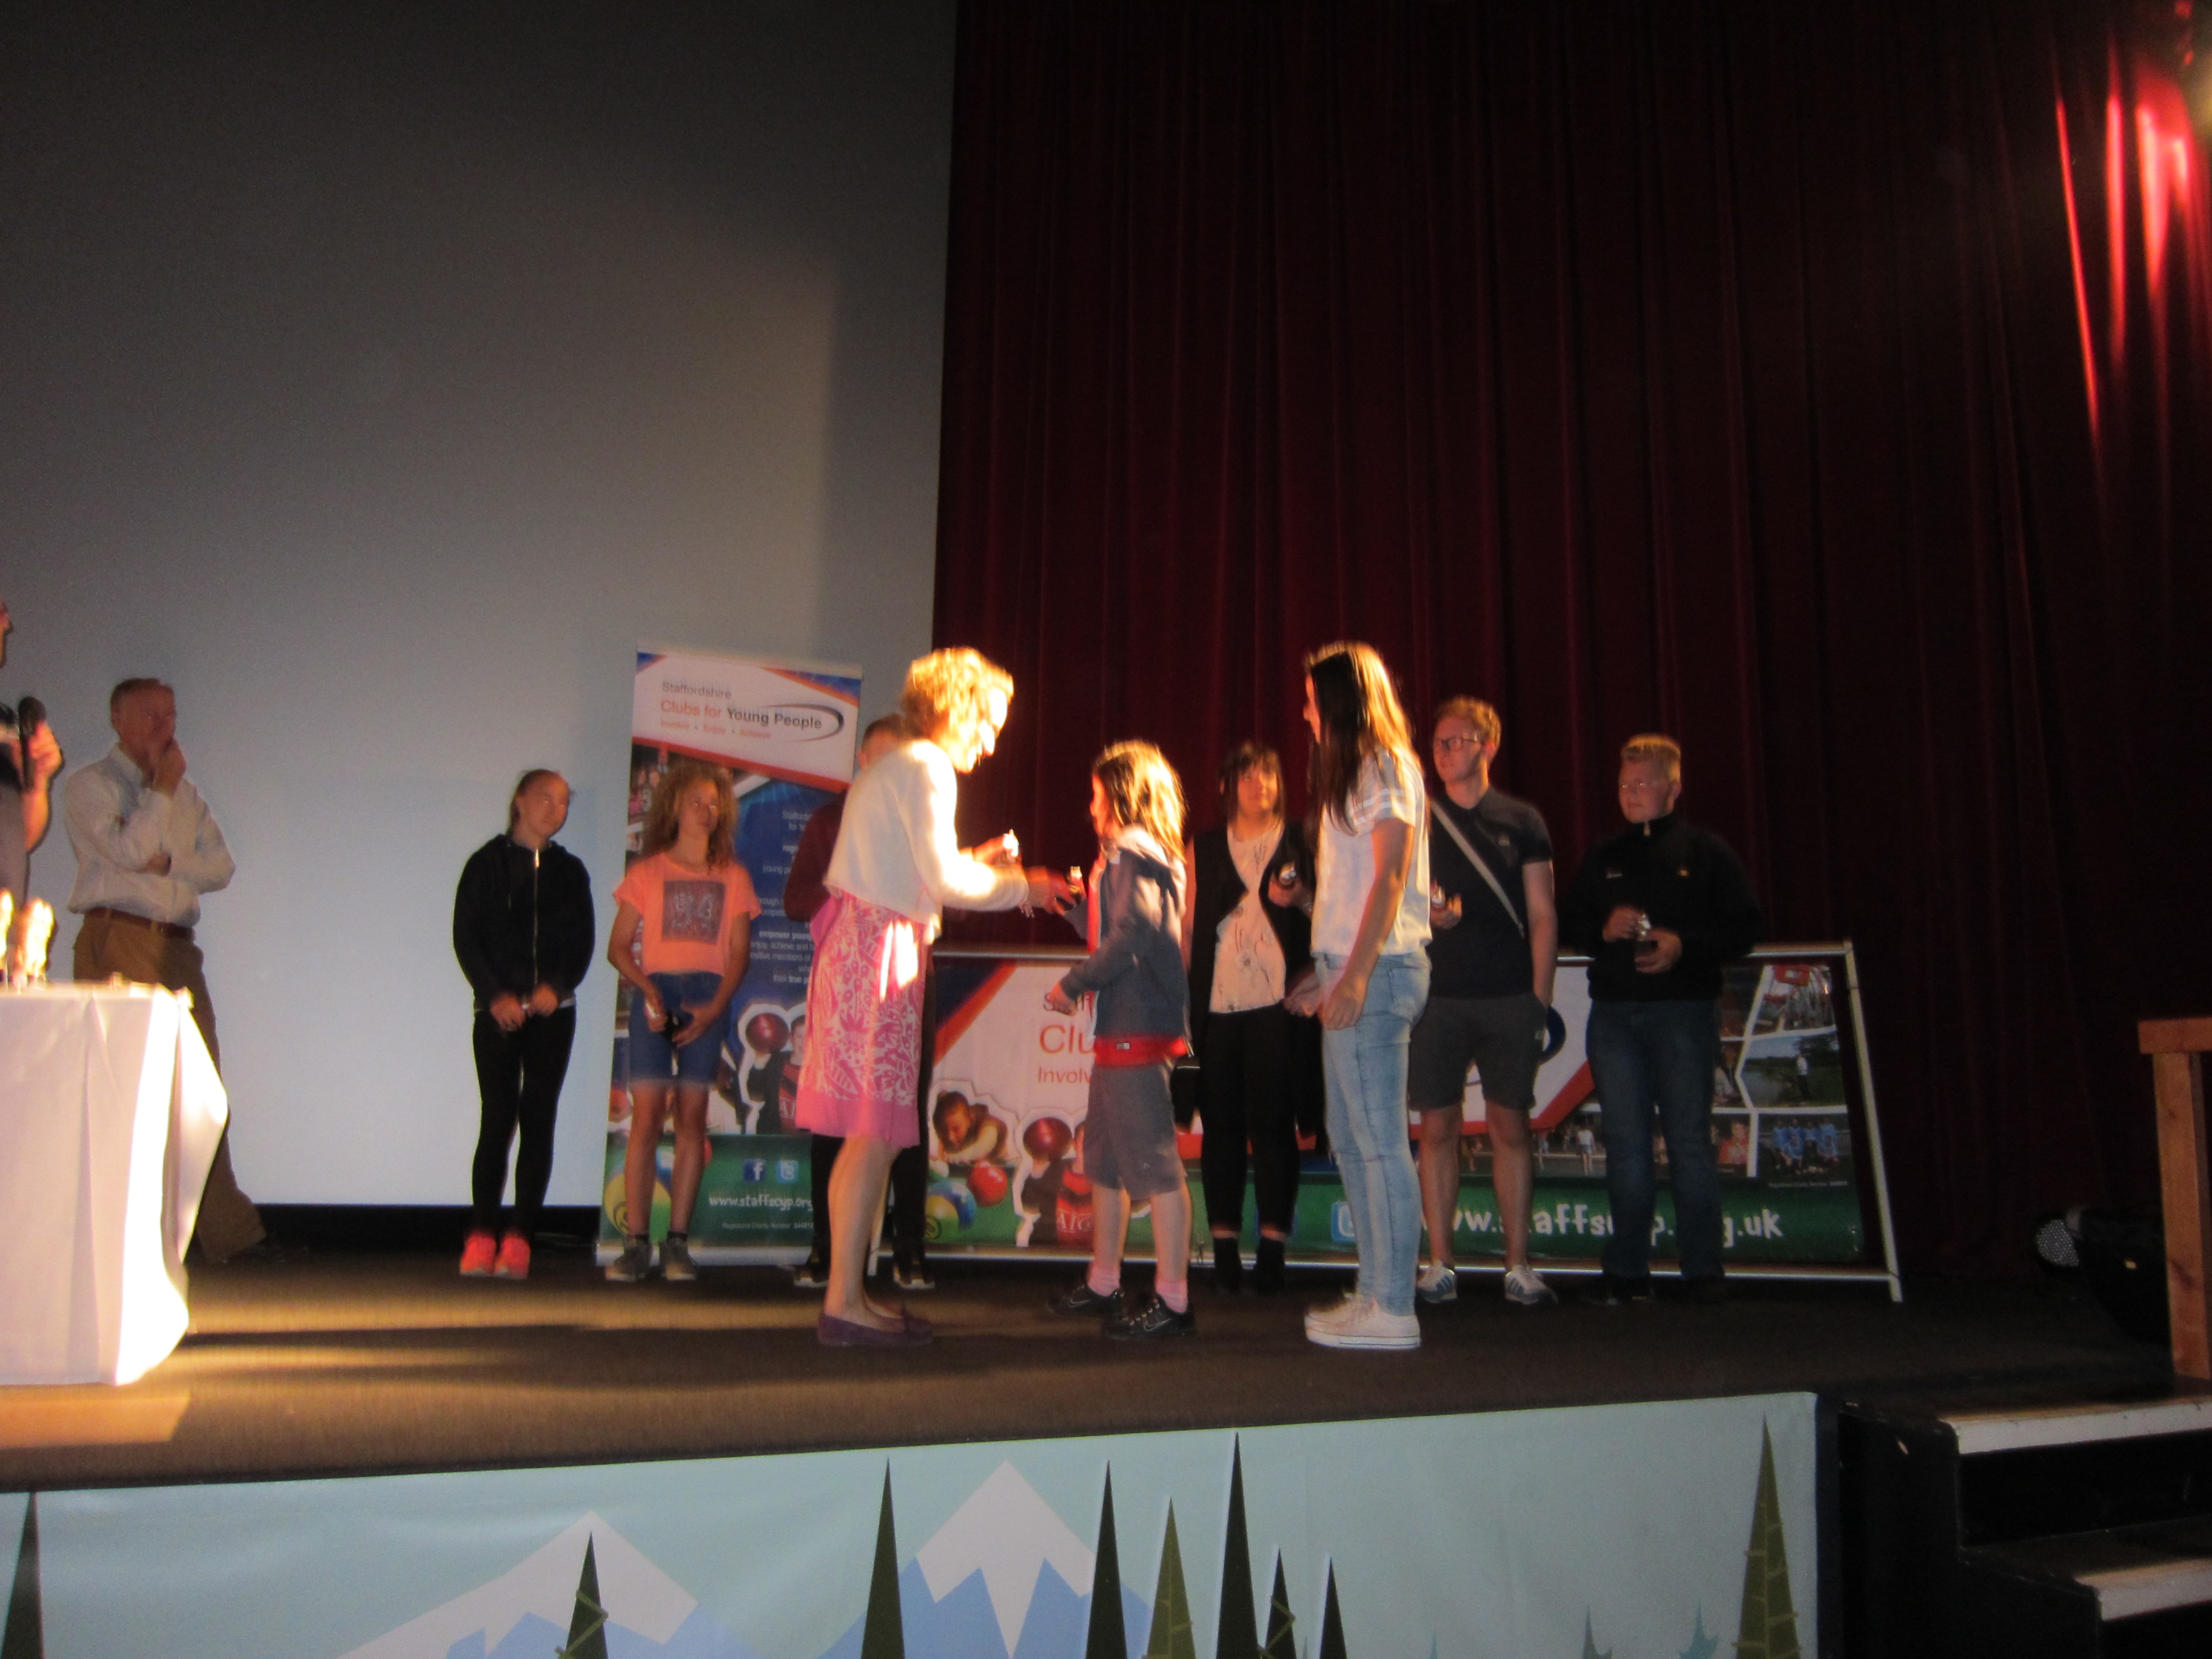 Staffordshire Clubs for Young People - Annual Presentation Event 2015 (2)